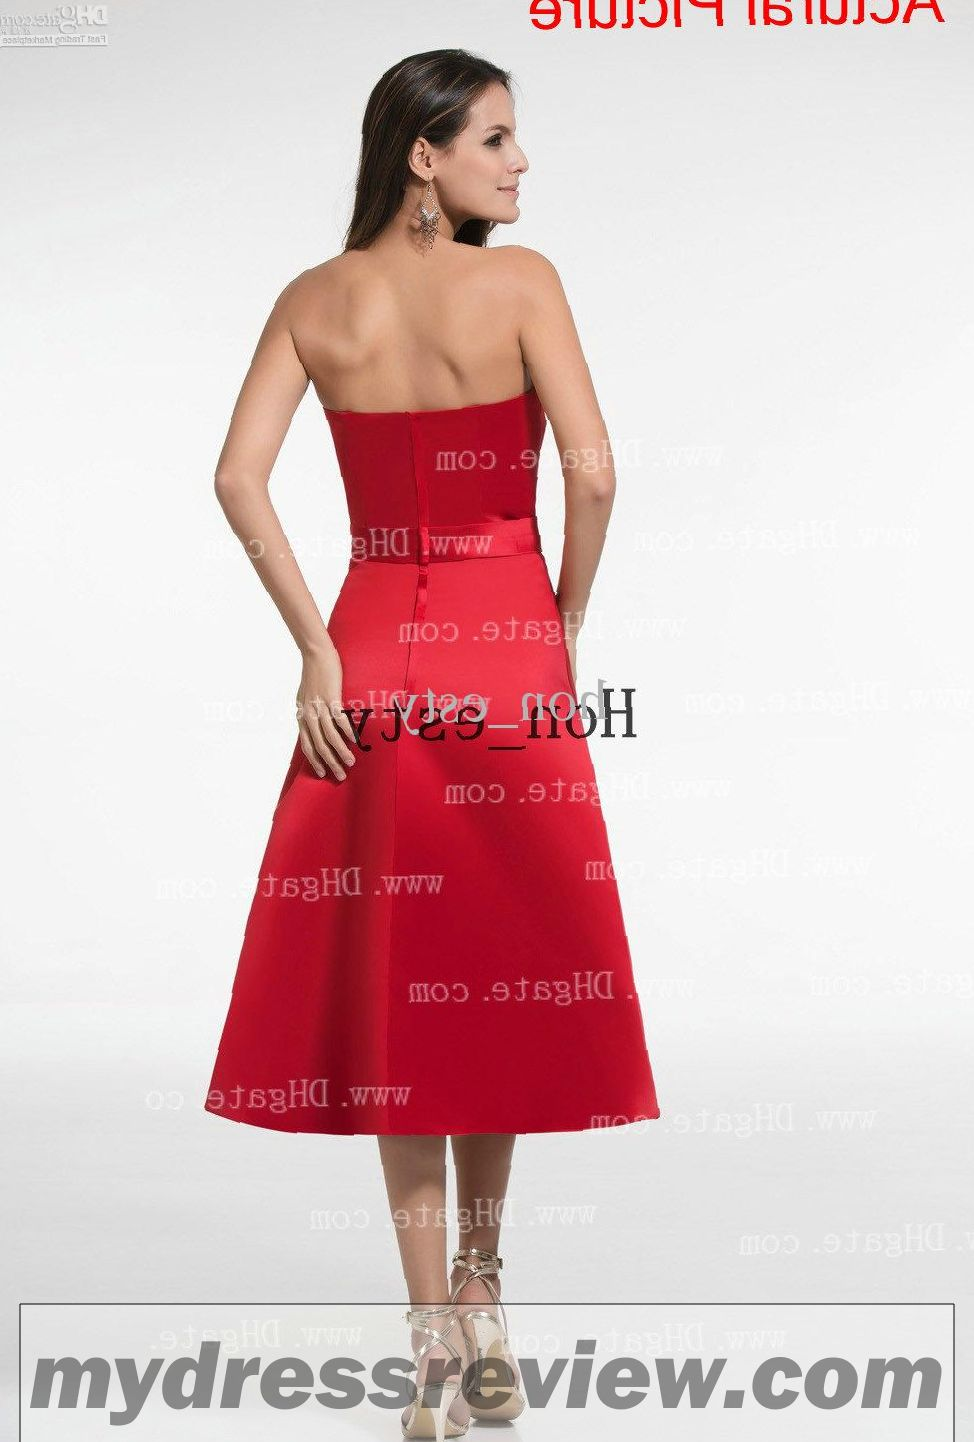 Black And Red Maid Of Honor Dresses : Overview 2017